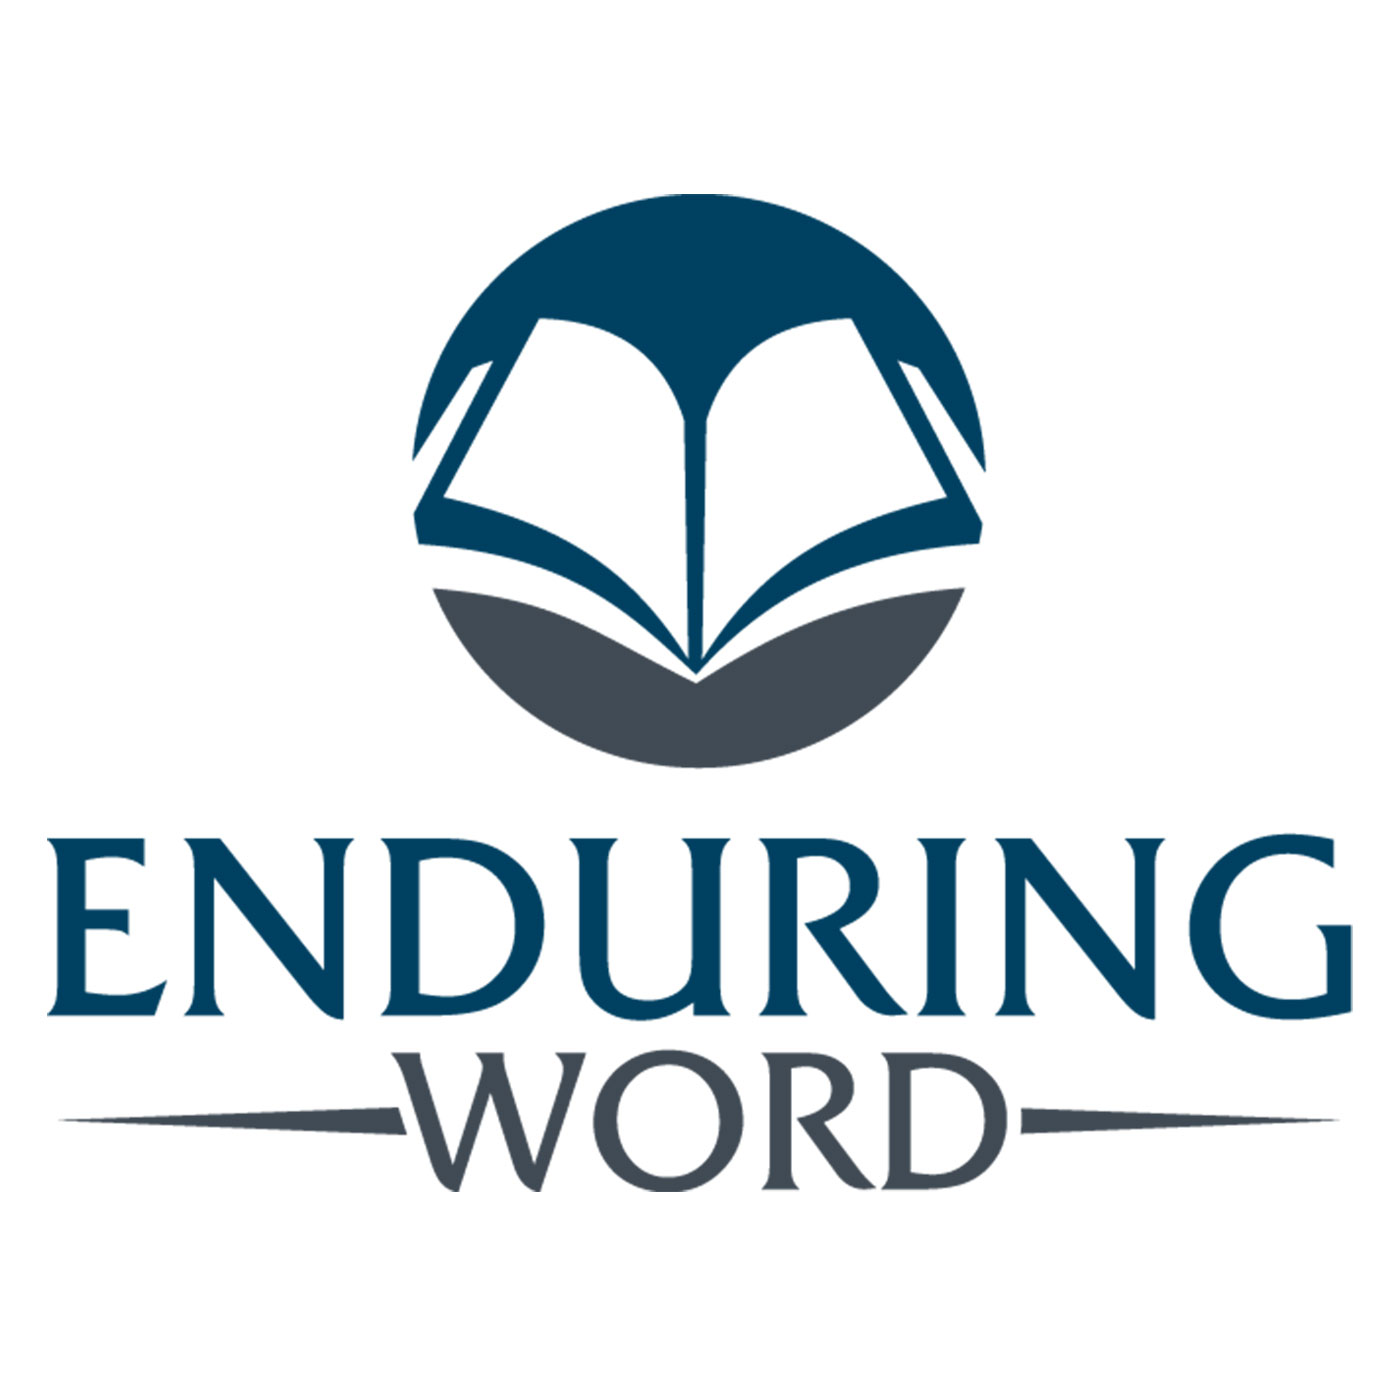 David Guzik - Enduring Word